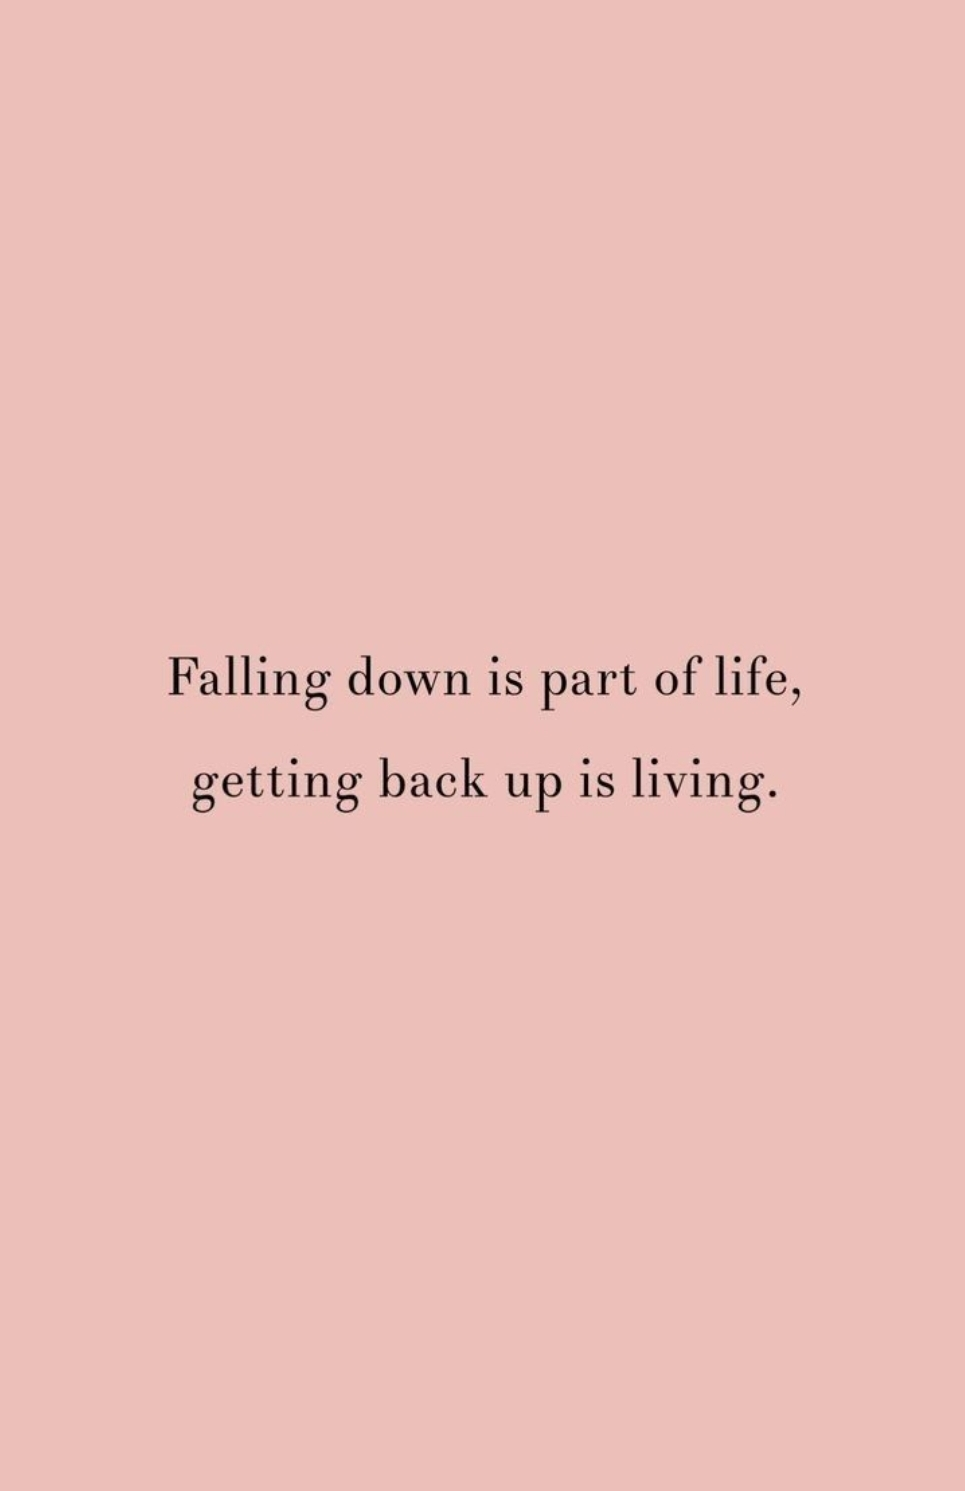 [Image] Dont give up, you got this!